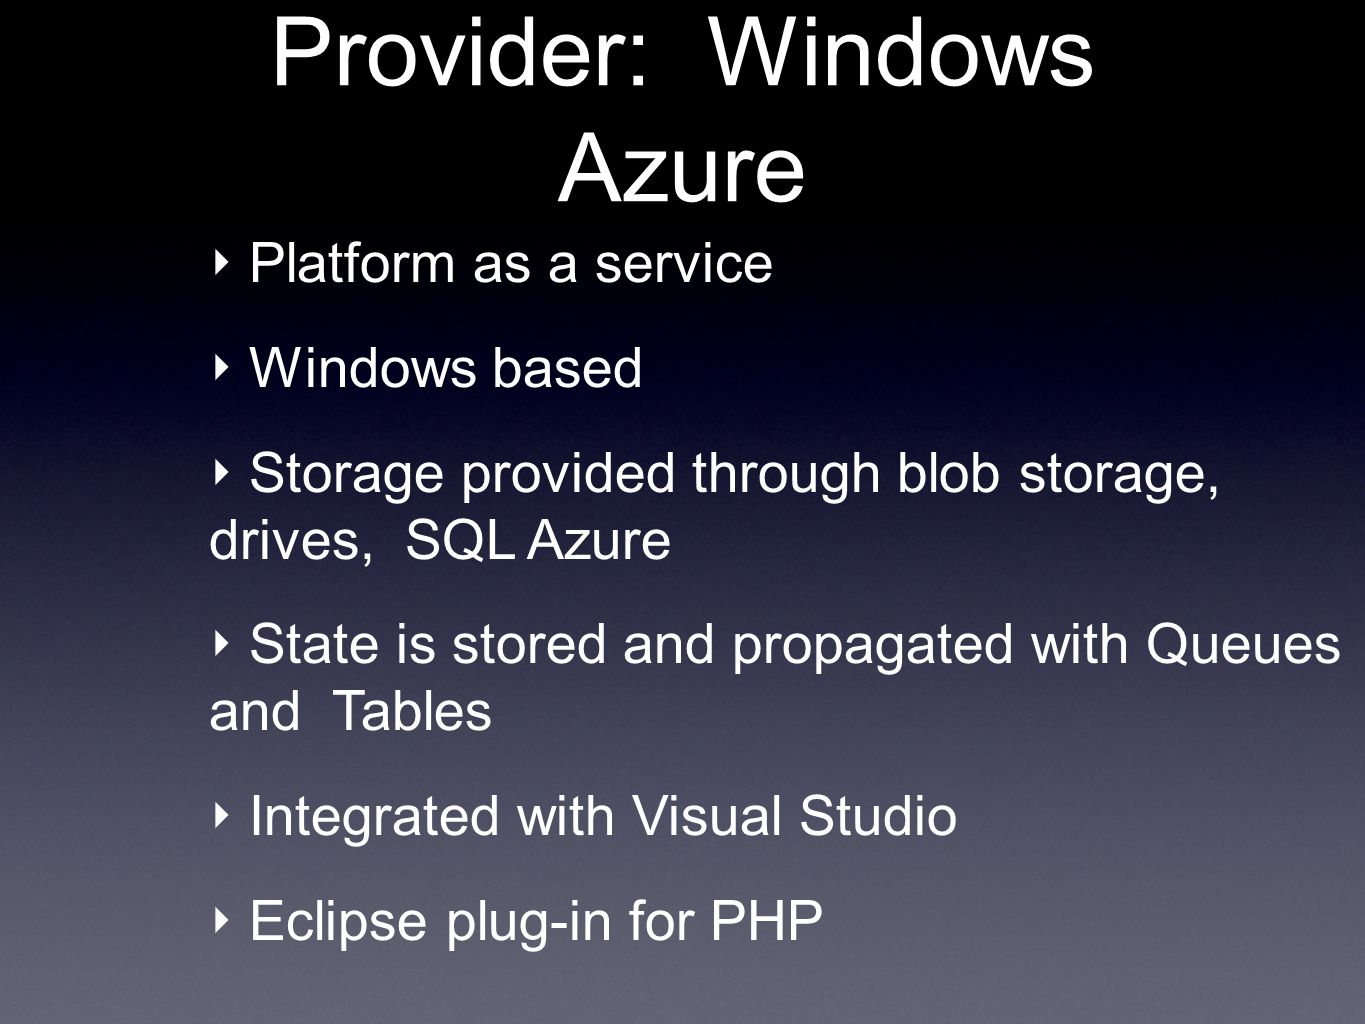 Provider: Windows Azure Platform as a service Windows based Storage provided through blob storage, drives, SQL Azure State is stored and propagated with Queues and Tables Integrated with Visual Studio Eclipse plug-in for PHP